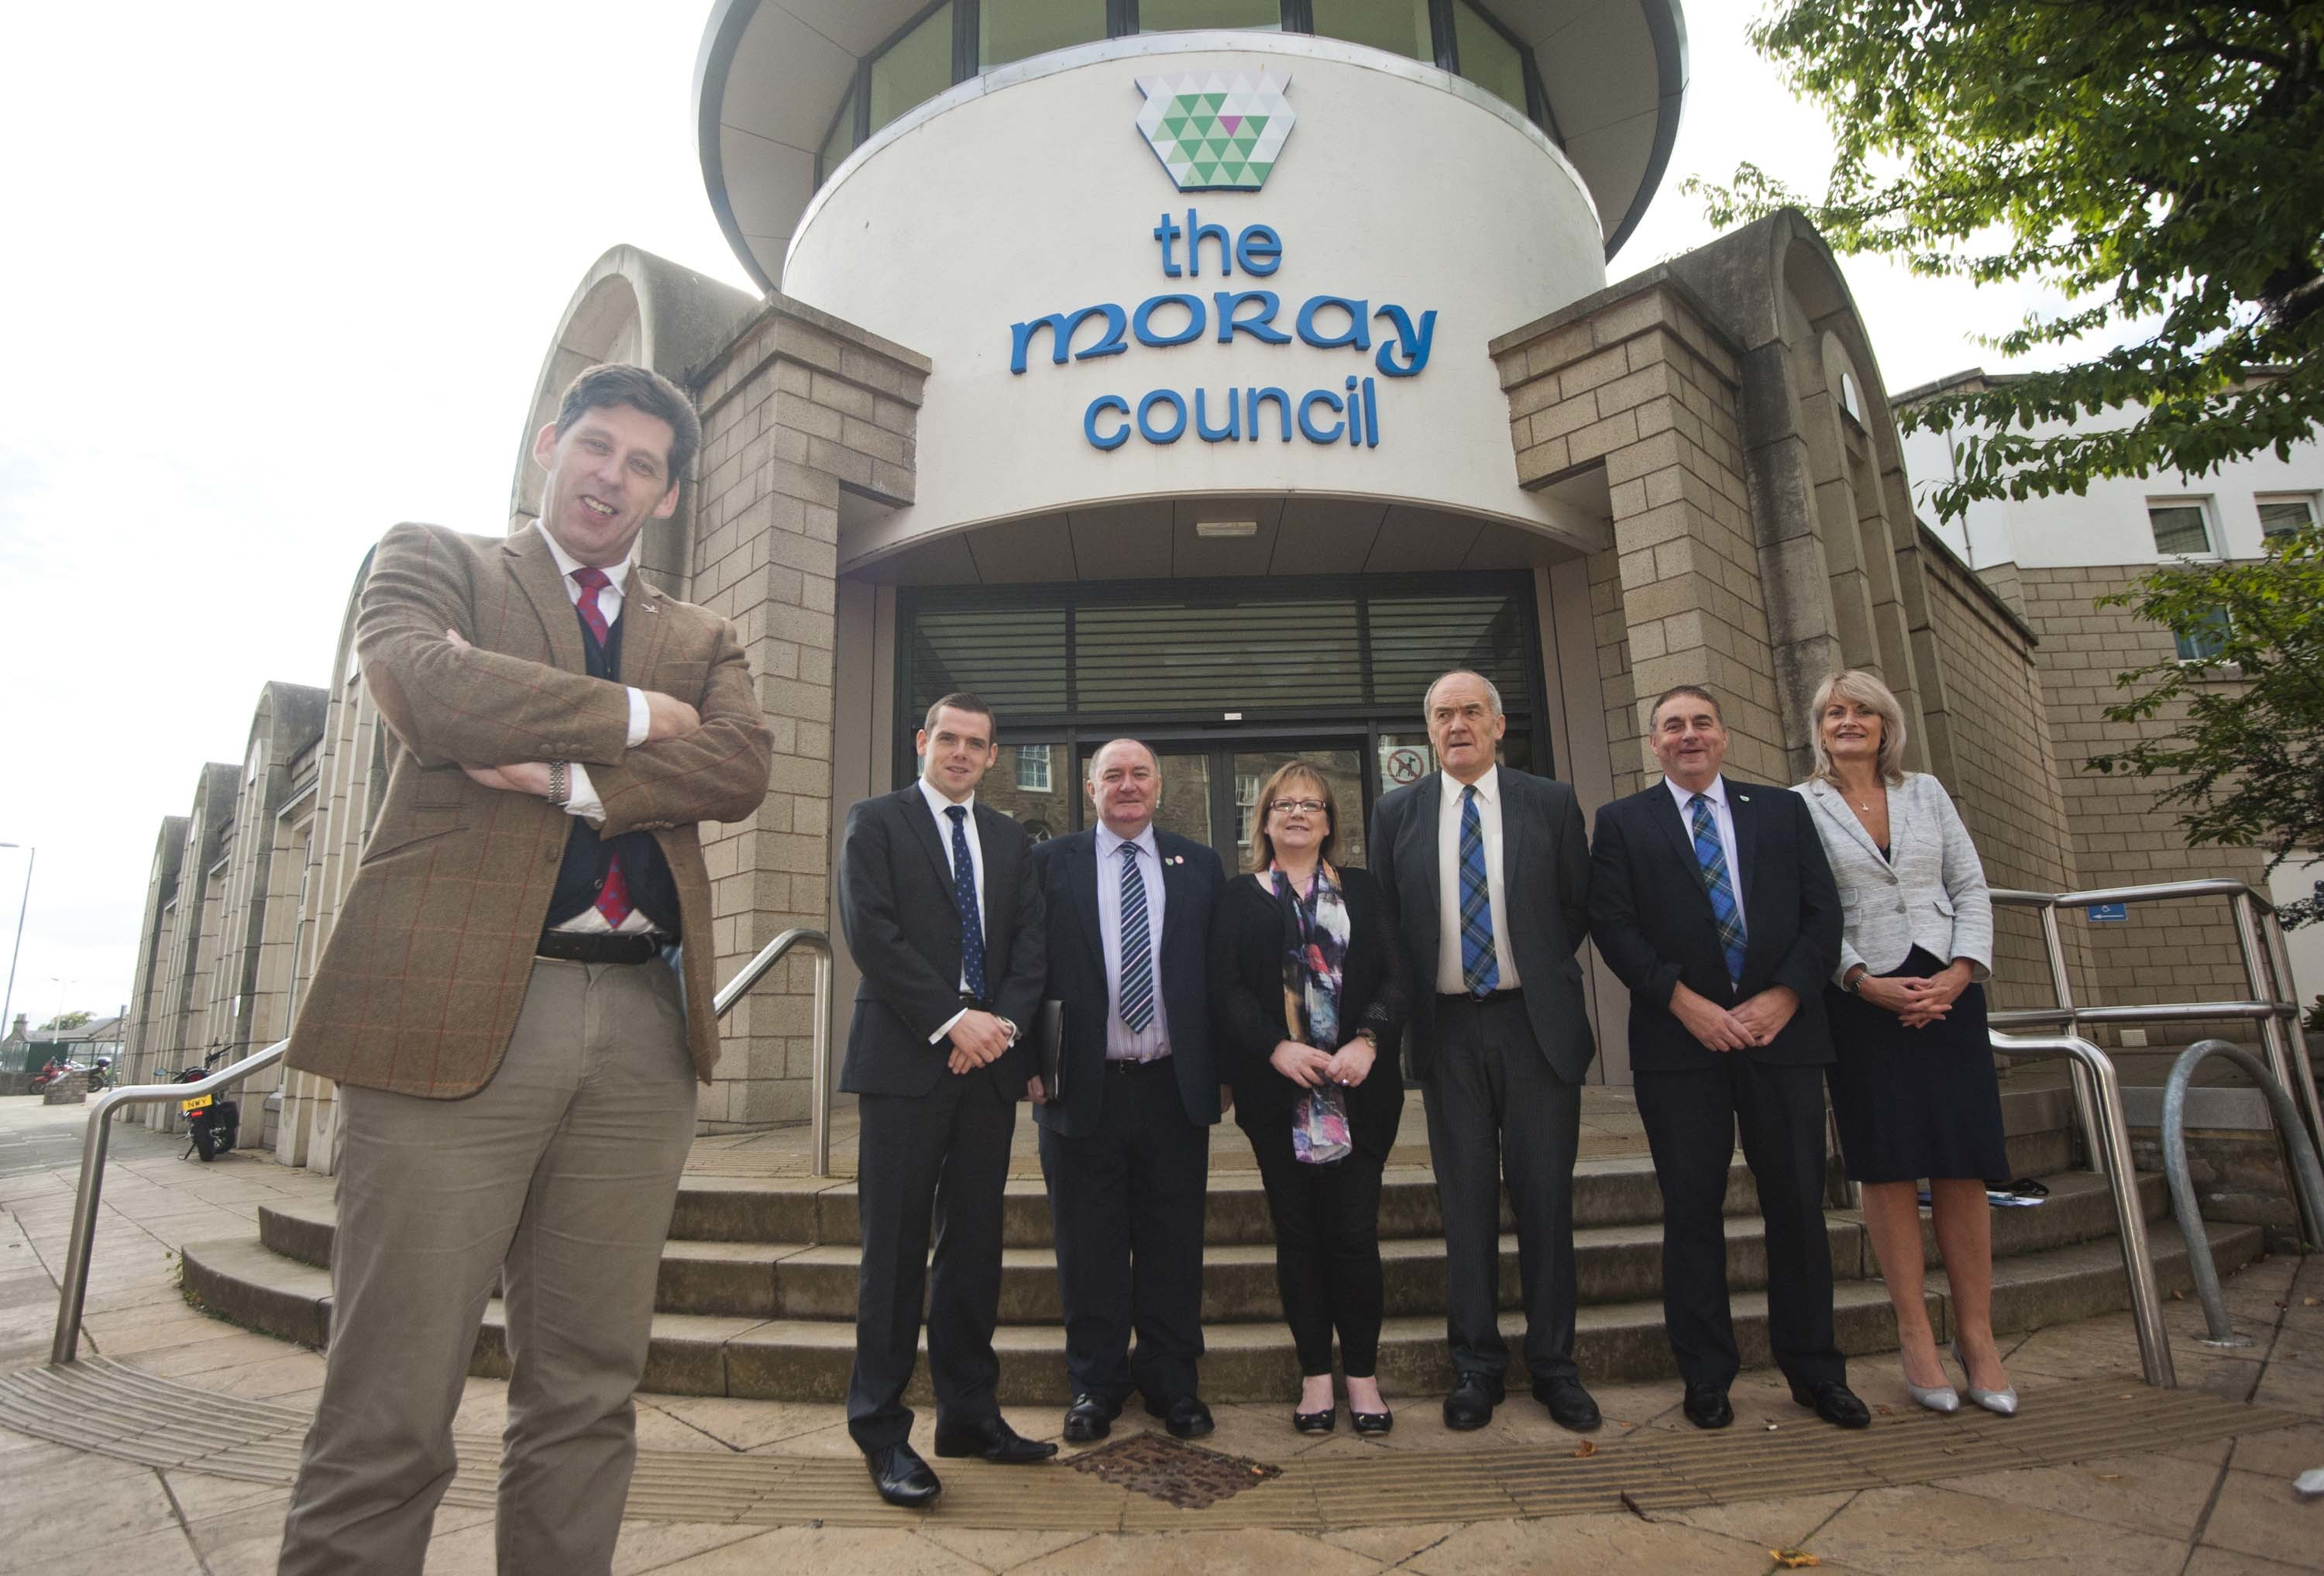 Scottish Office minister Lord Ian Duncan, pictured left, met Moray MP Douglas Ross and senior council figures about the city deal in Elgin.